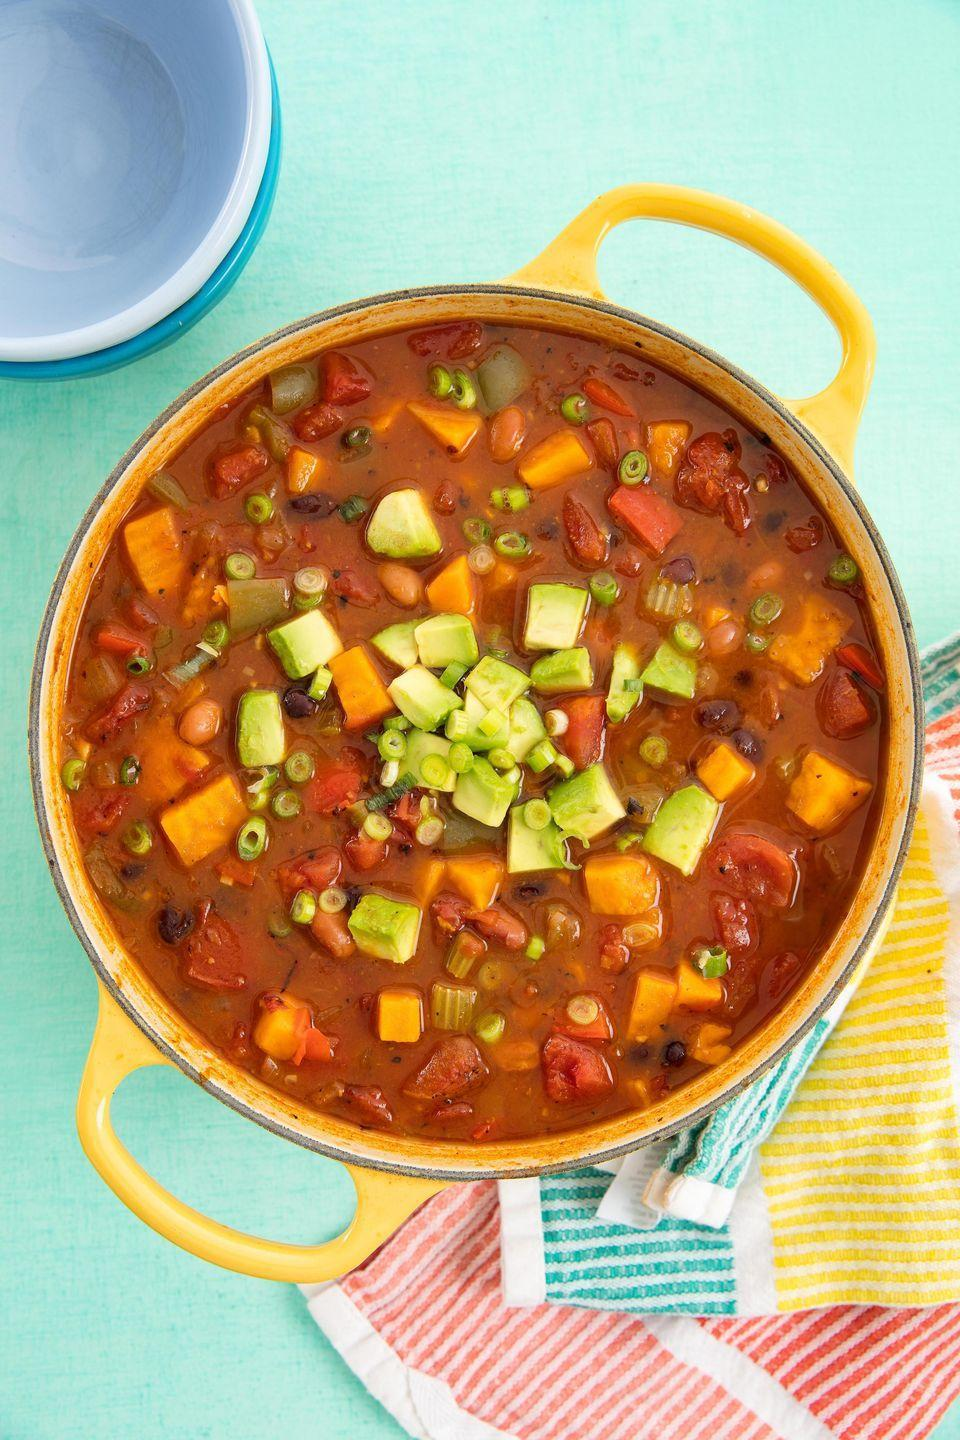 "<p>Who said chili has to have meat anyways?</p><p>Get the recipe from <a href=""https://www.delish.com/cooking/recipe-ideas/recipes/a58454/easy-vegan-chili-recipe/"" rel=""nofollow noopener"" target=""_blank"" data-ylk=""slk:Delish"" class=""link rapid-noclick-resp"">Delish</a>.</p><p><a class=""link rapid-noclick-resp"" href=""https://www.amazon.com/Creuset-Signature-Enameled-Cast-Iron-4-Quart/dp/B0076NOI7A/?tag=syn-yahoo-20&ascsubtag=%5Bartid%7C1782.g.622%5Bsrc%7Cyahoo-us"" rel=""nofollow noopener"" target=""_blank"" data-ylk=""slk:BUY NOW"">BUY NOW</a> <strong><em>Le Creuset Dutch Oven, $368, amazon.com</em></strong></p>"